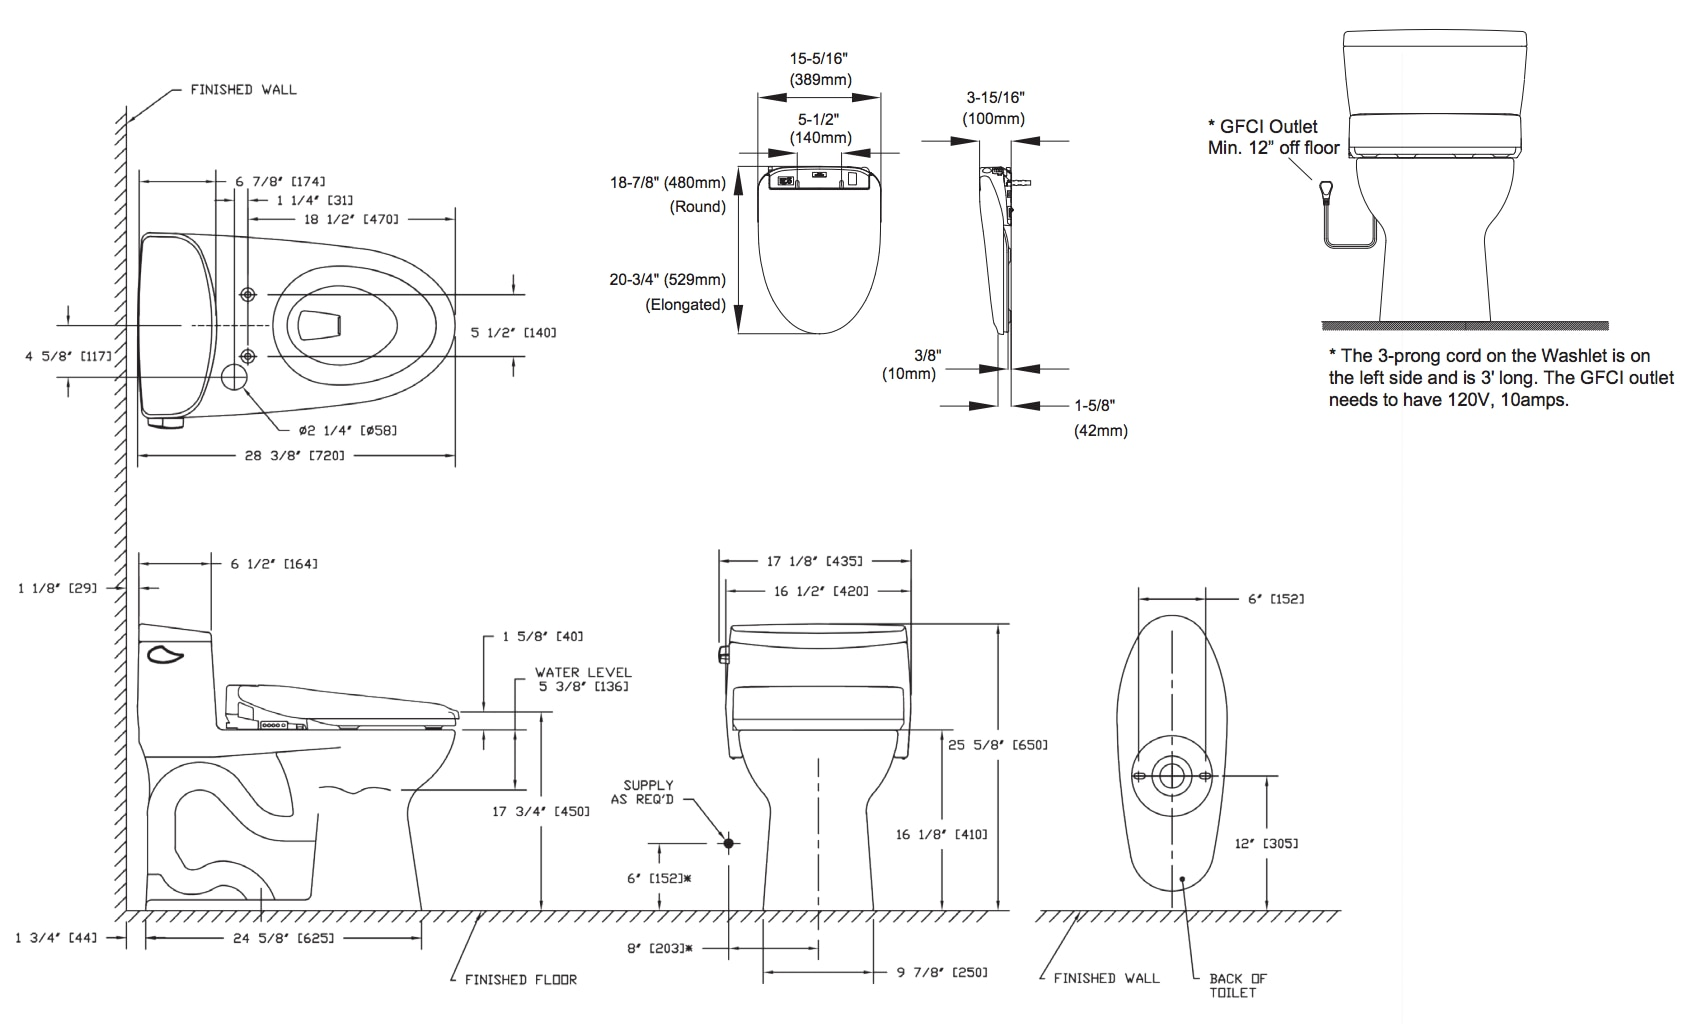 toto-supreme-ii-washlet-s350e-one-piece-toilet-and-bidet-system-1.28-gpf-diagram.png